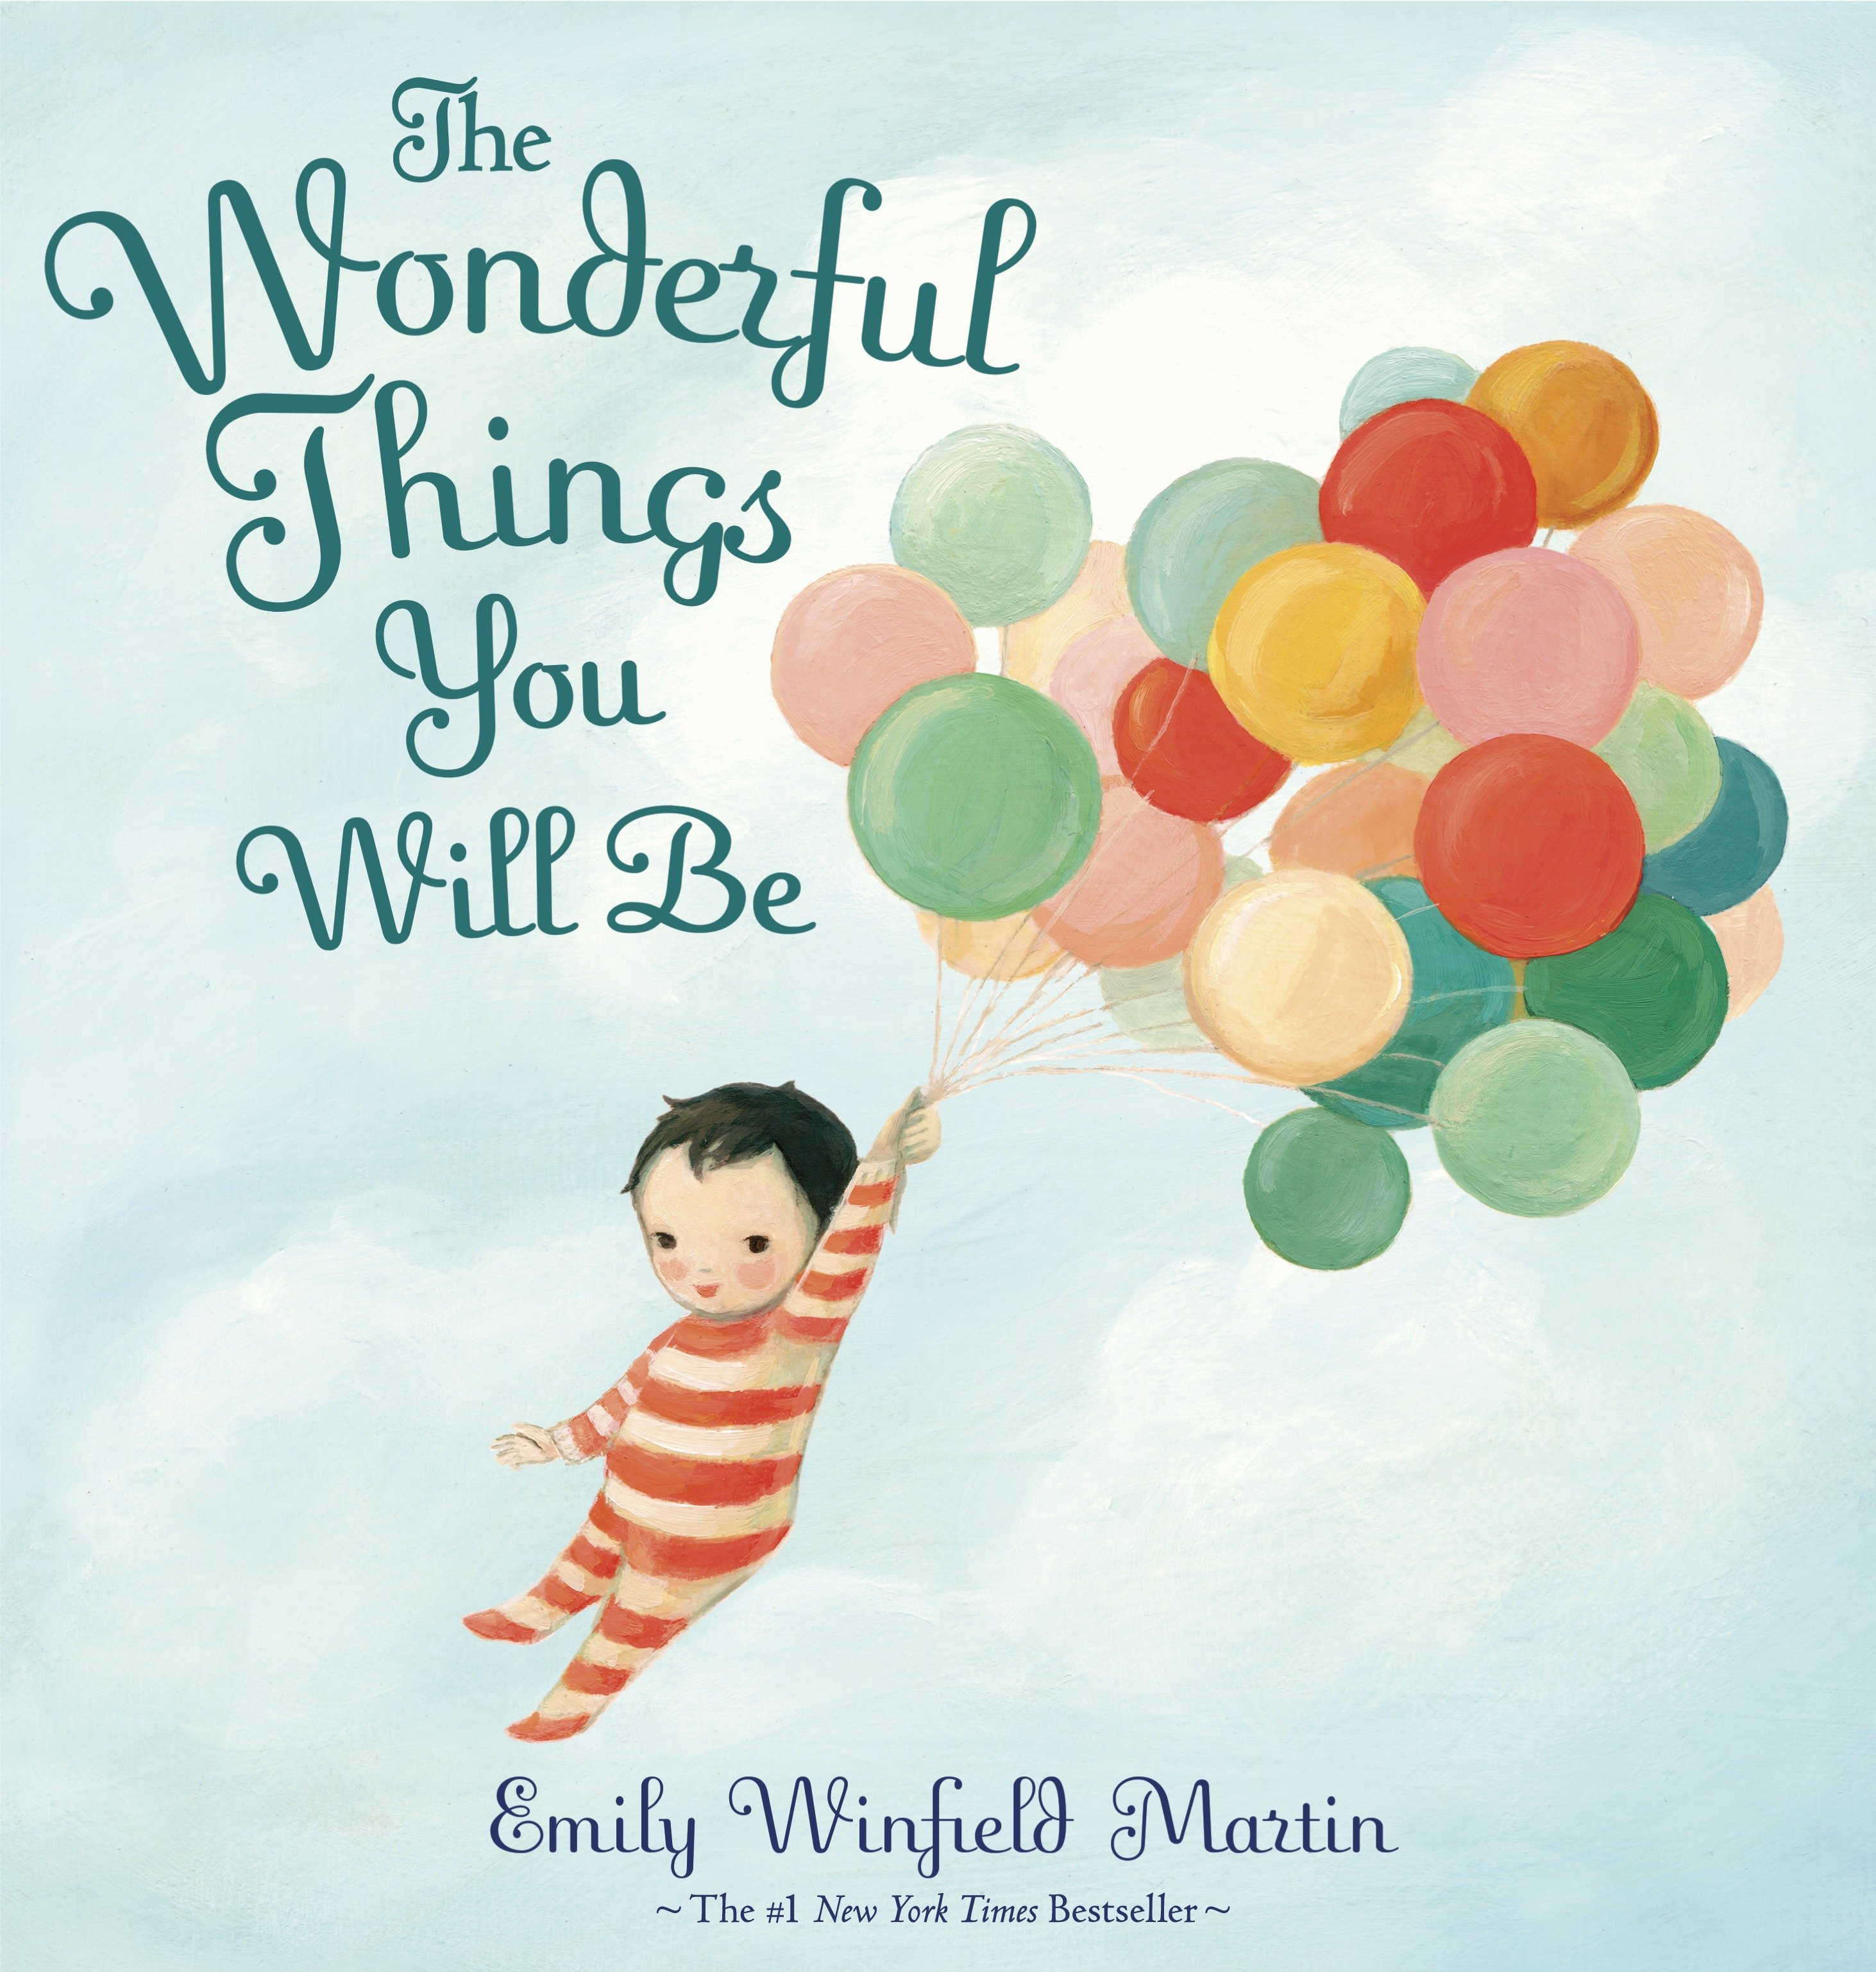 The wonderful things you will be cover image